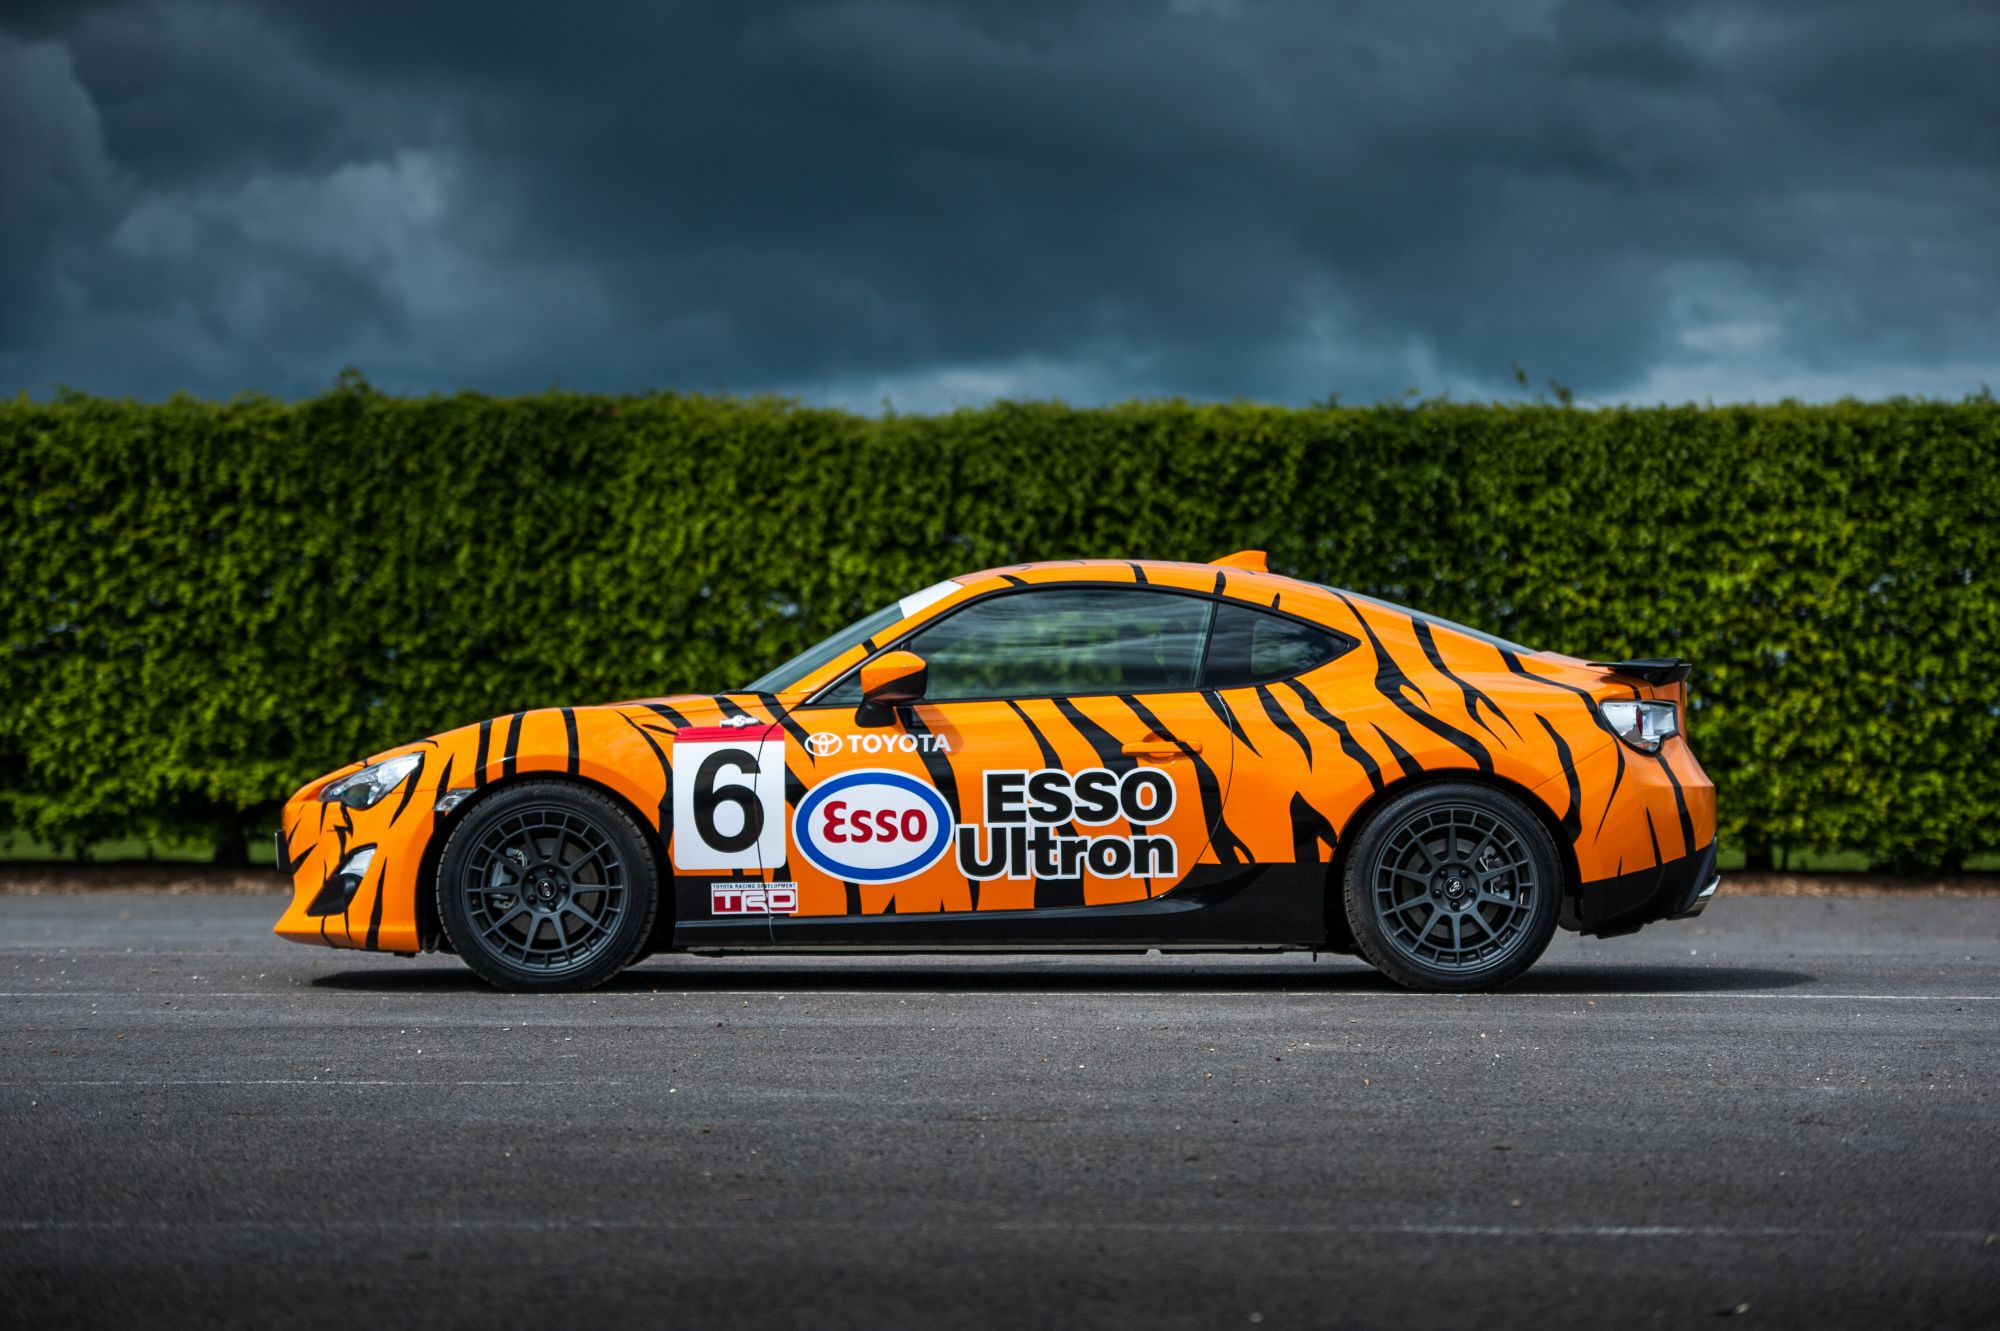 Toyota 86 in iconic livery for Goodwood